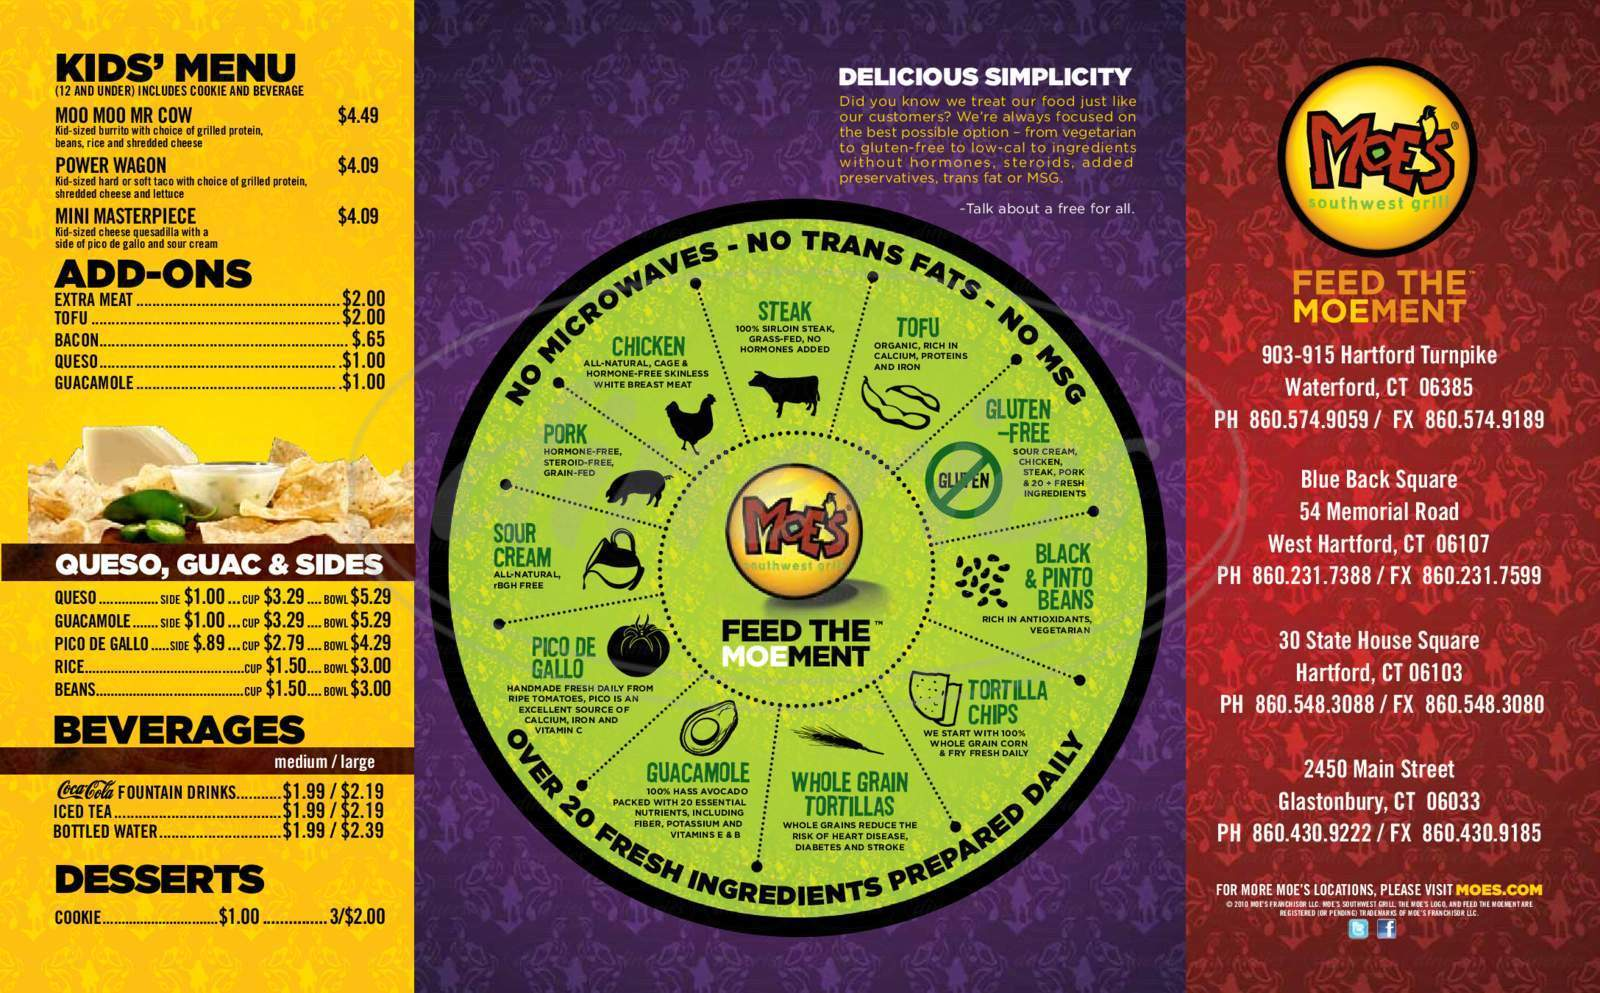 menu for Moe's Southwest Grill